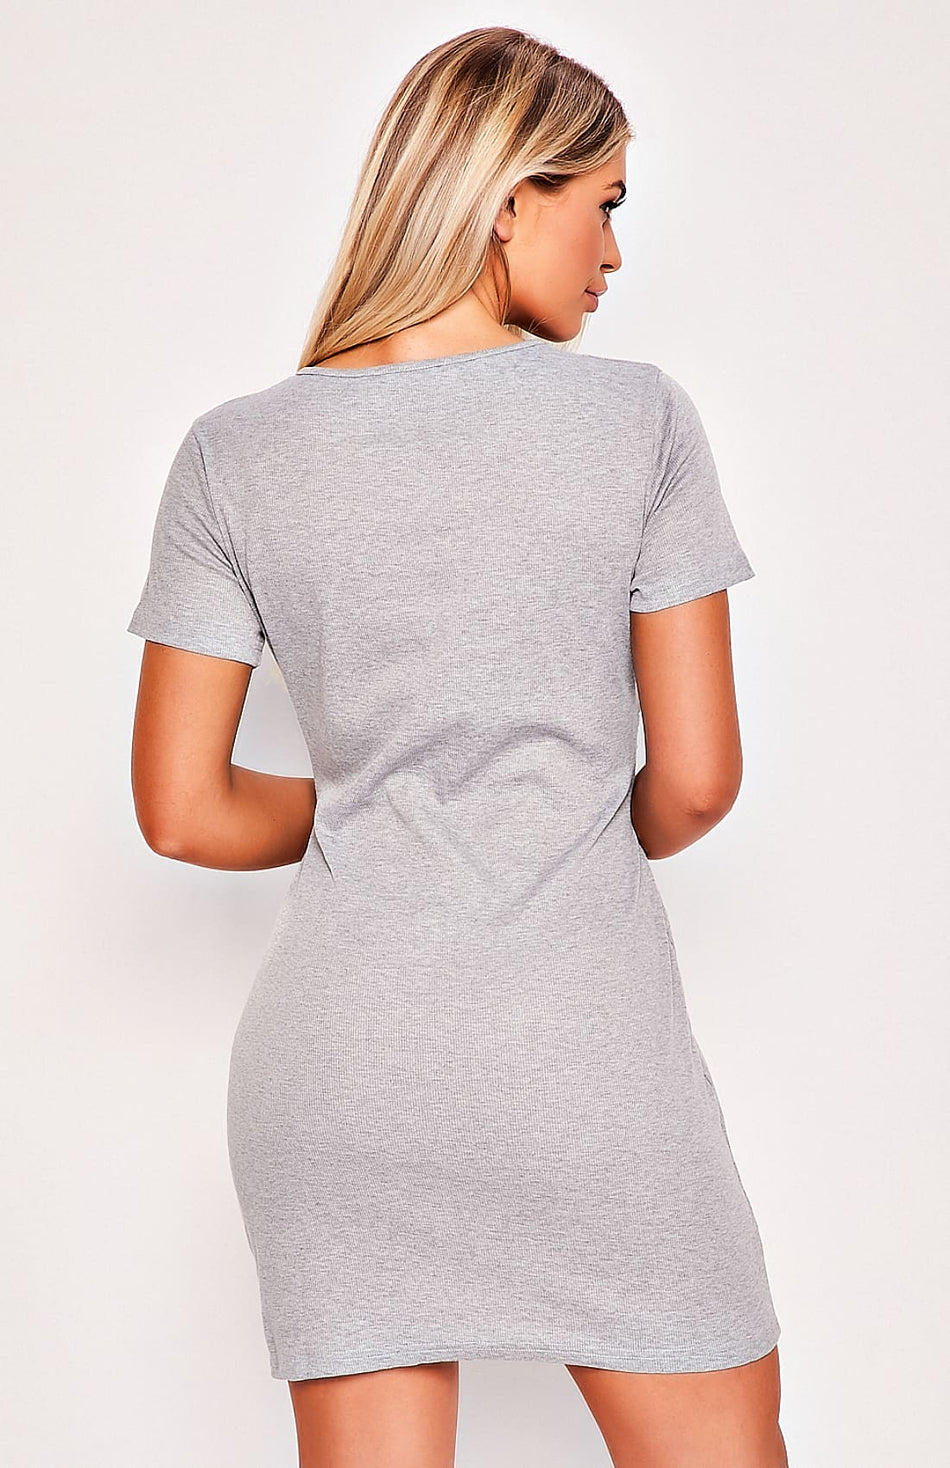 Grey Waist Tie Mini Dress